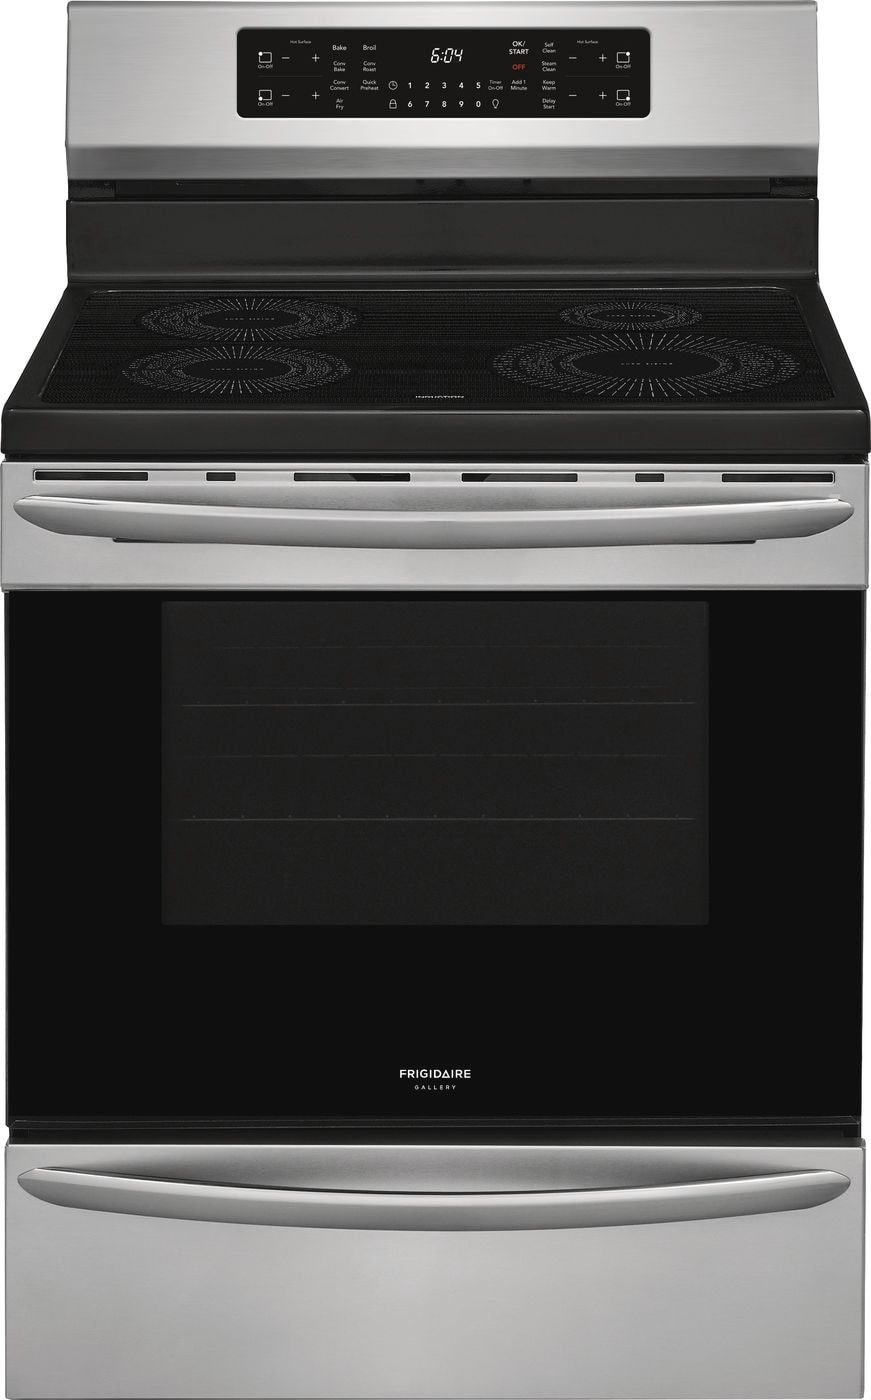 "Frigidaire Gallery 30"" Freestanding Induction Range with Air Fry"